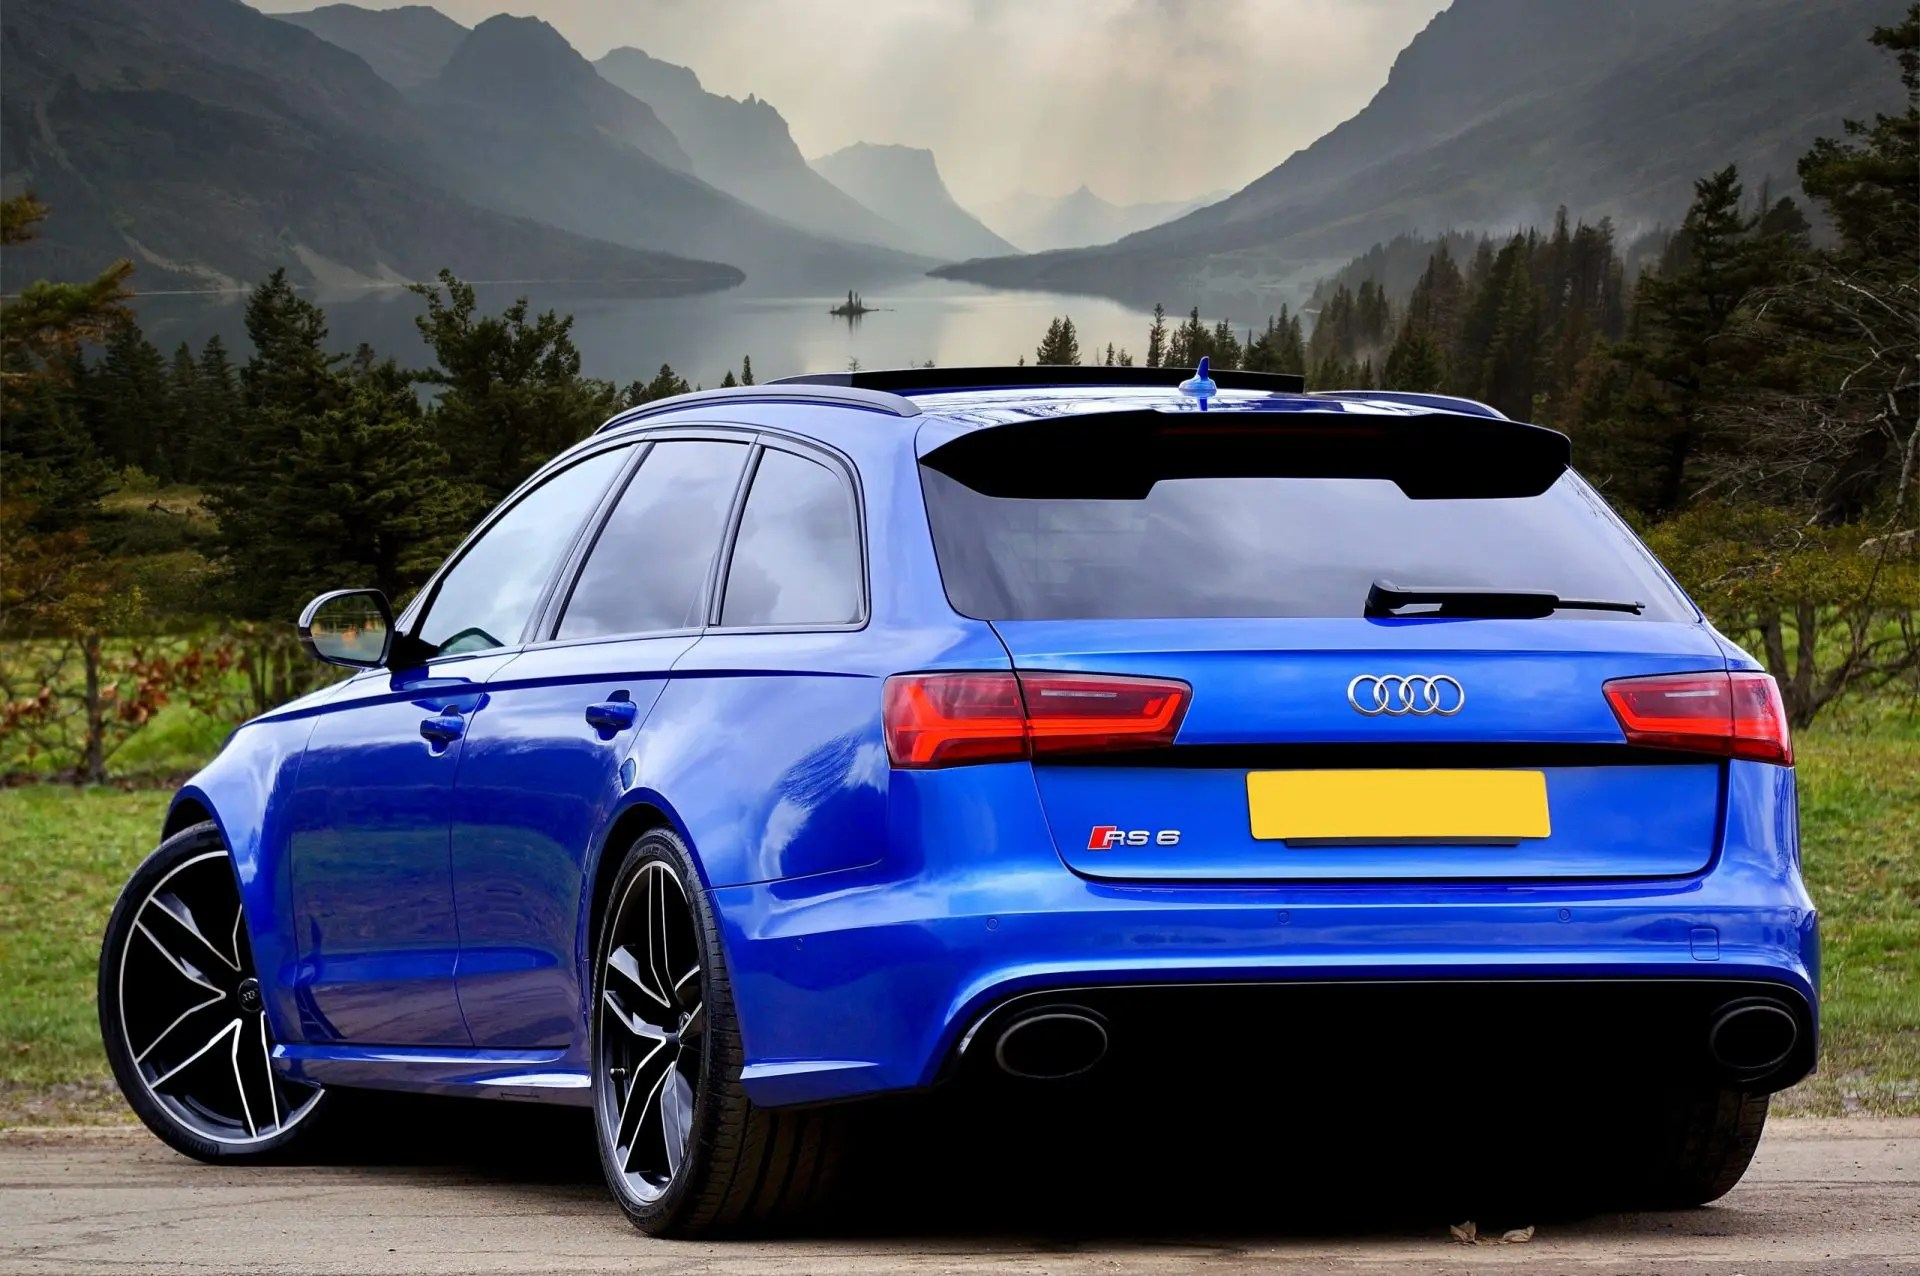 Blue Audi RS6 car with tinted windows